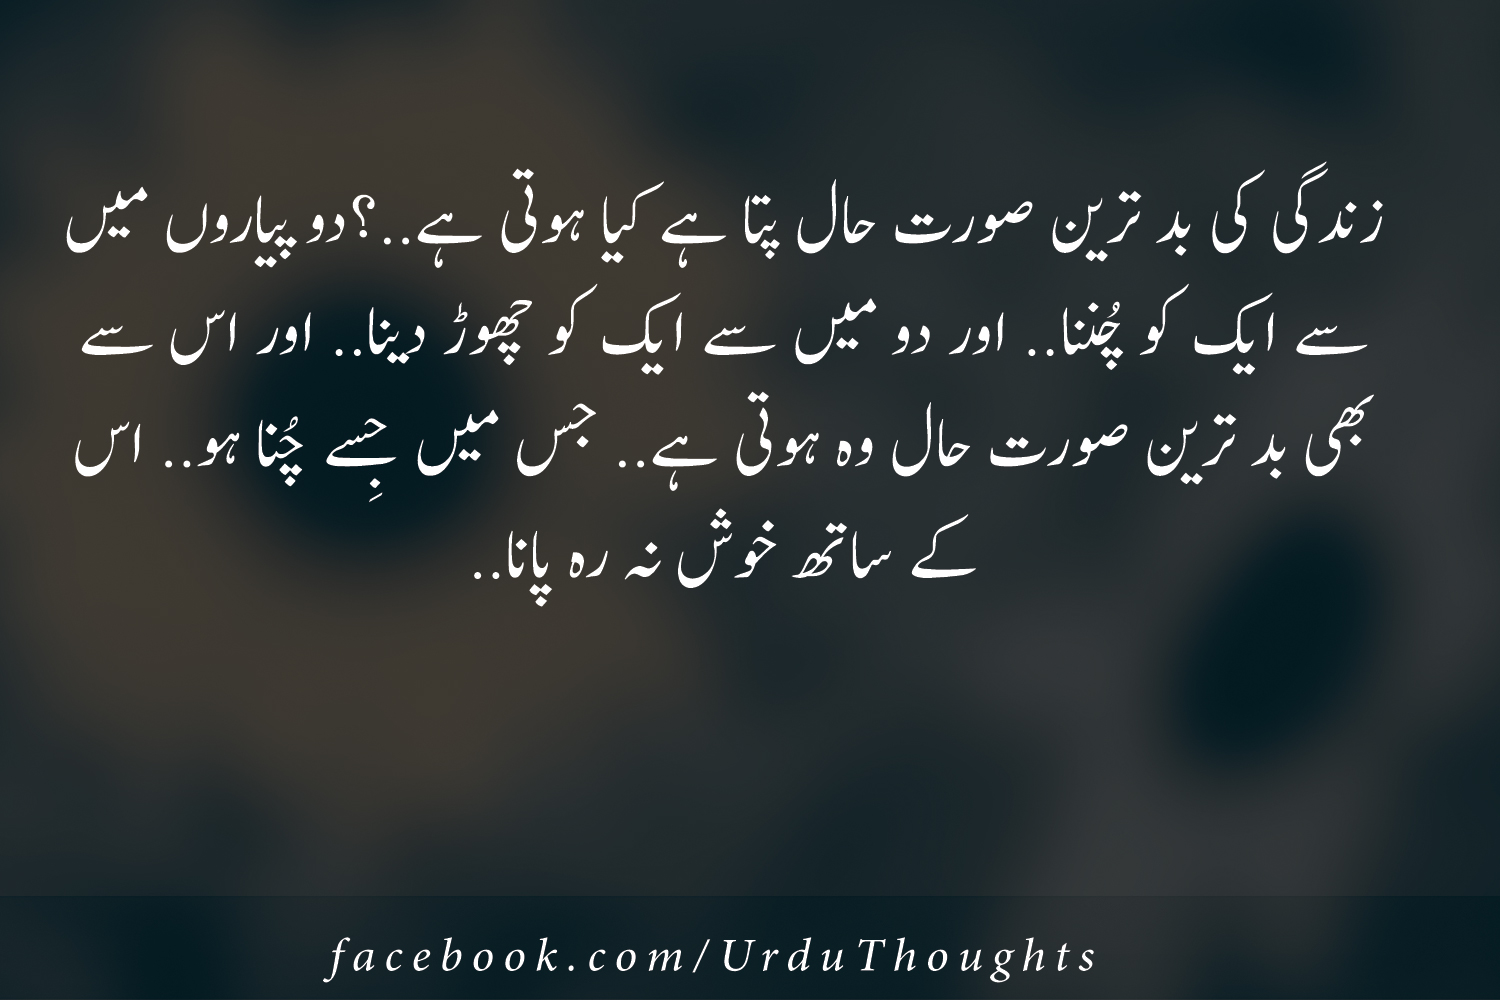 Awesome Sad Quotes Wallpapers Best Famous Success Quotes In Urdu Images Urdu Thoughts